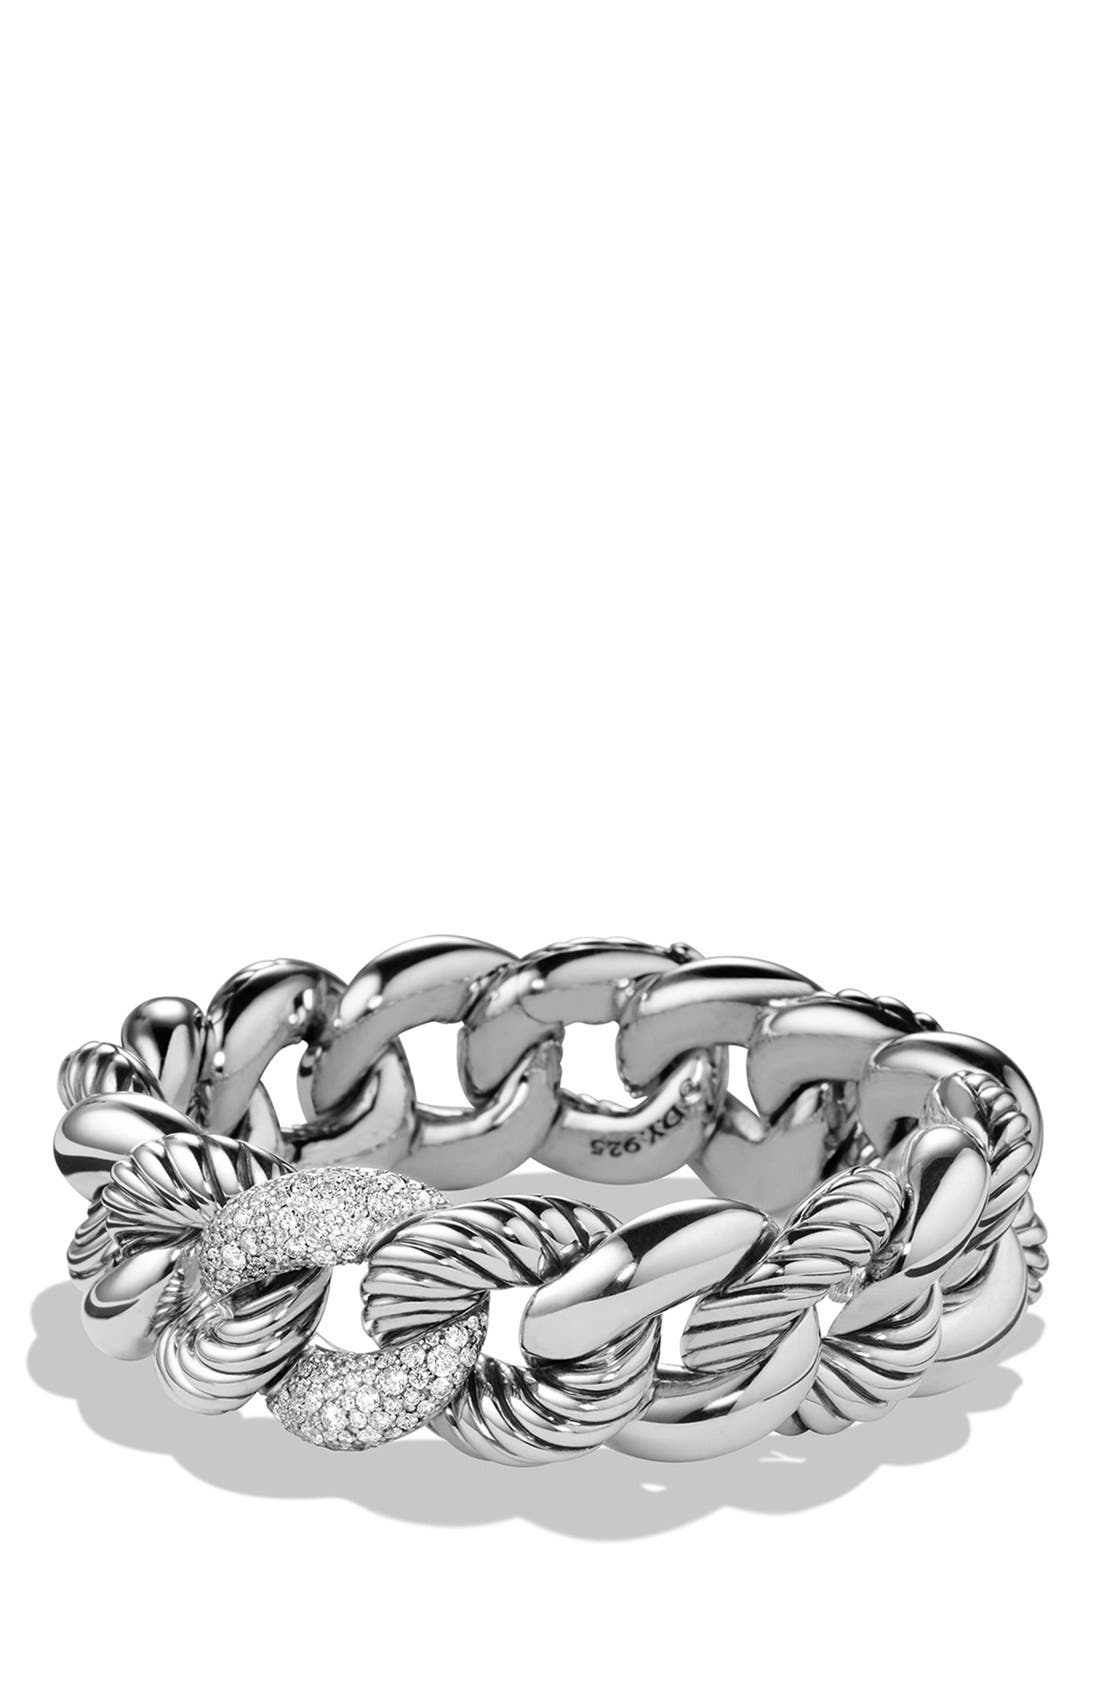 DAVID YURMAN 'Belmont' Curb Link Bracelet with Diamonds